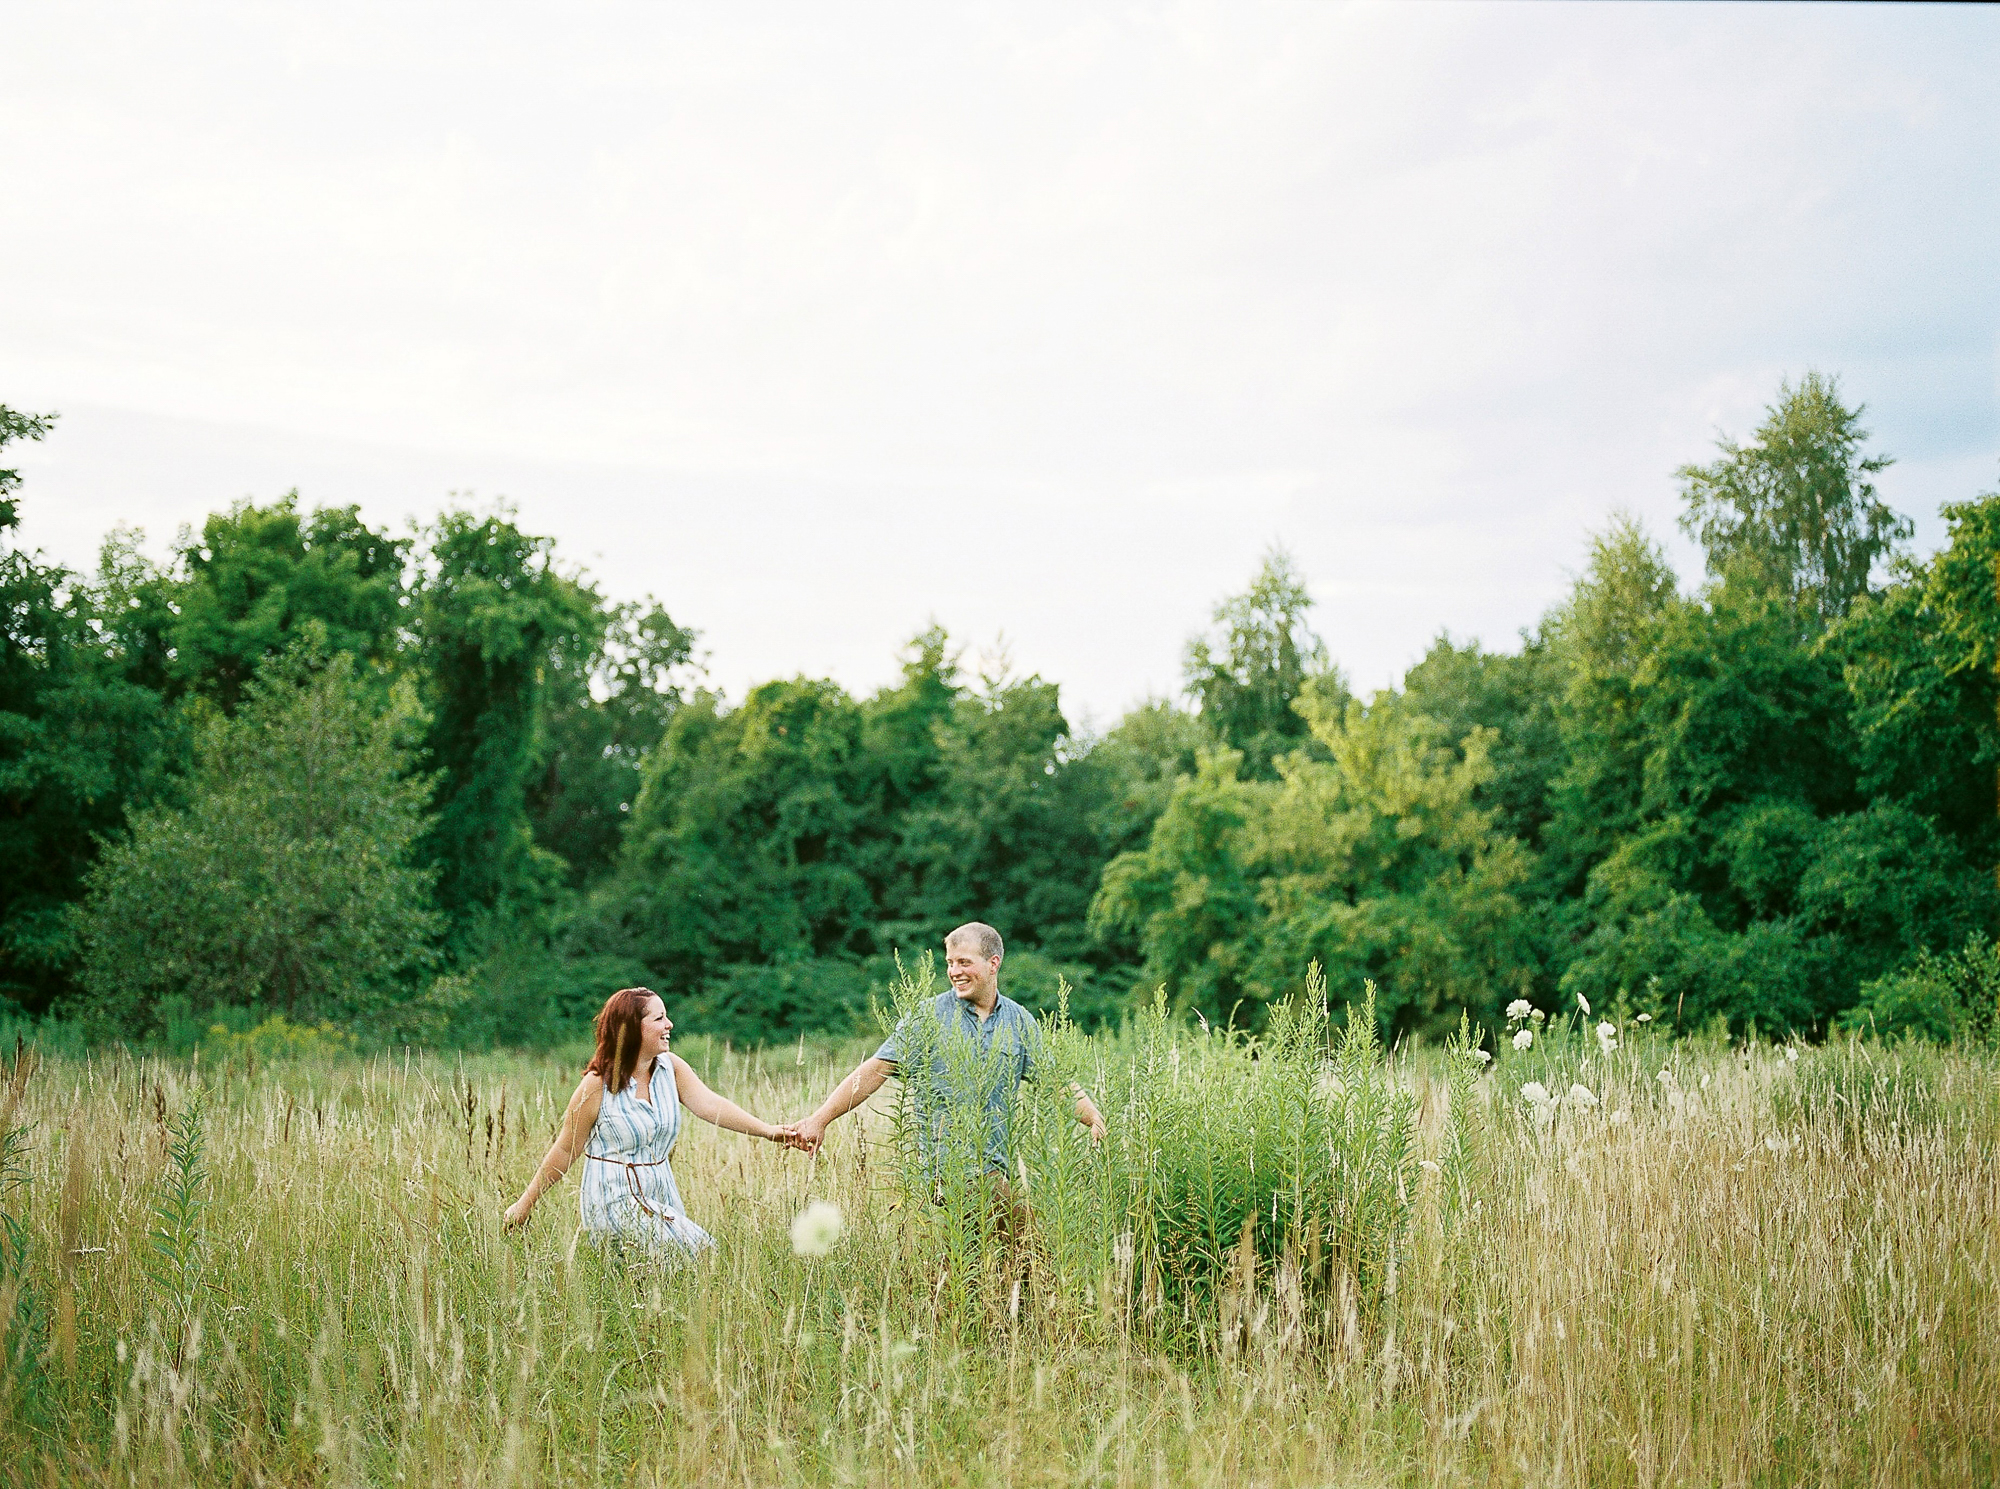 Alexandra-Elise-Photography-Ali-Reed-Film-Farm-Engagement-Session-011